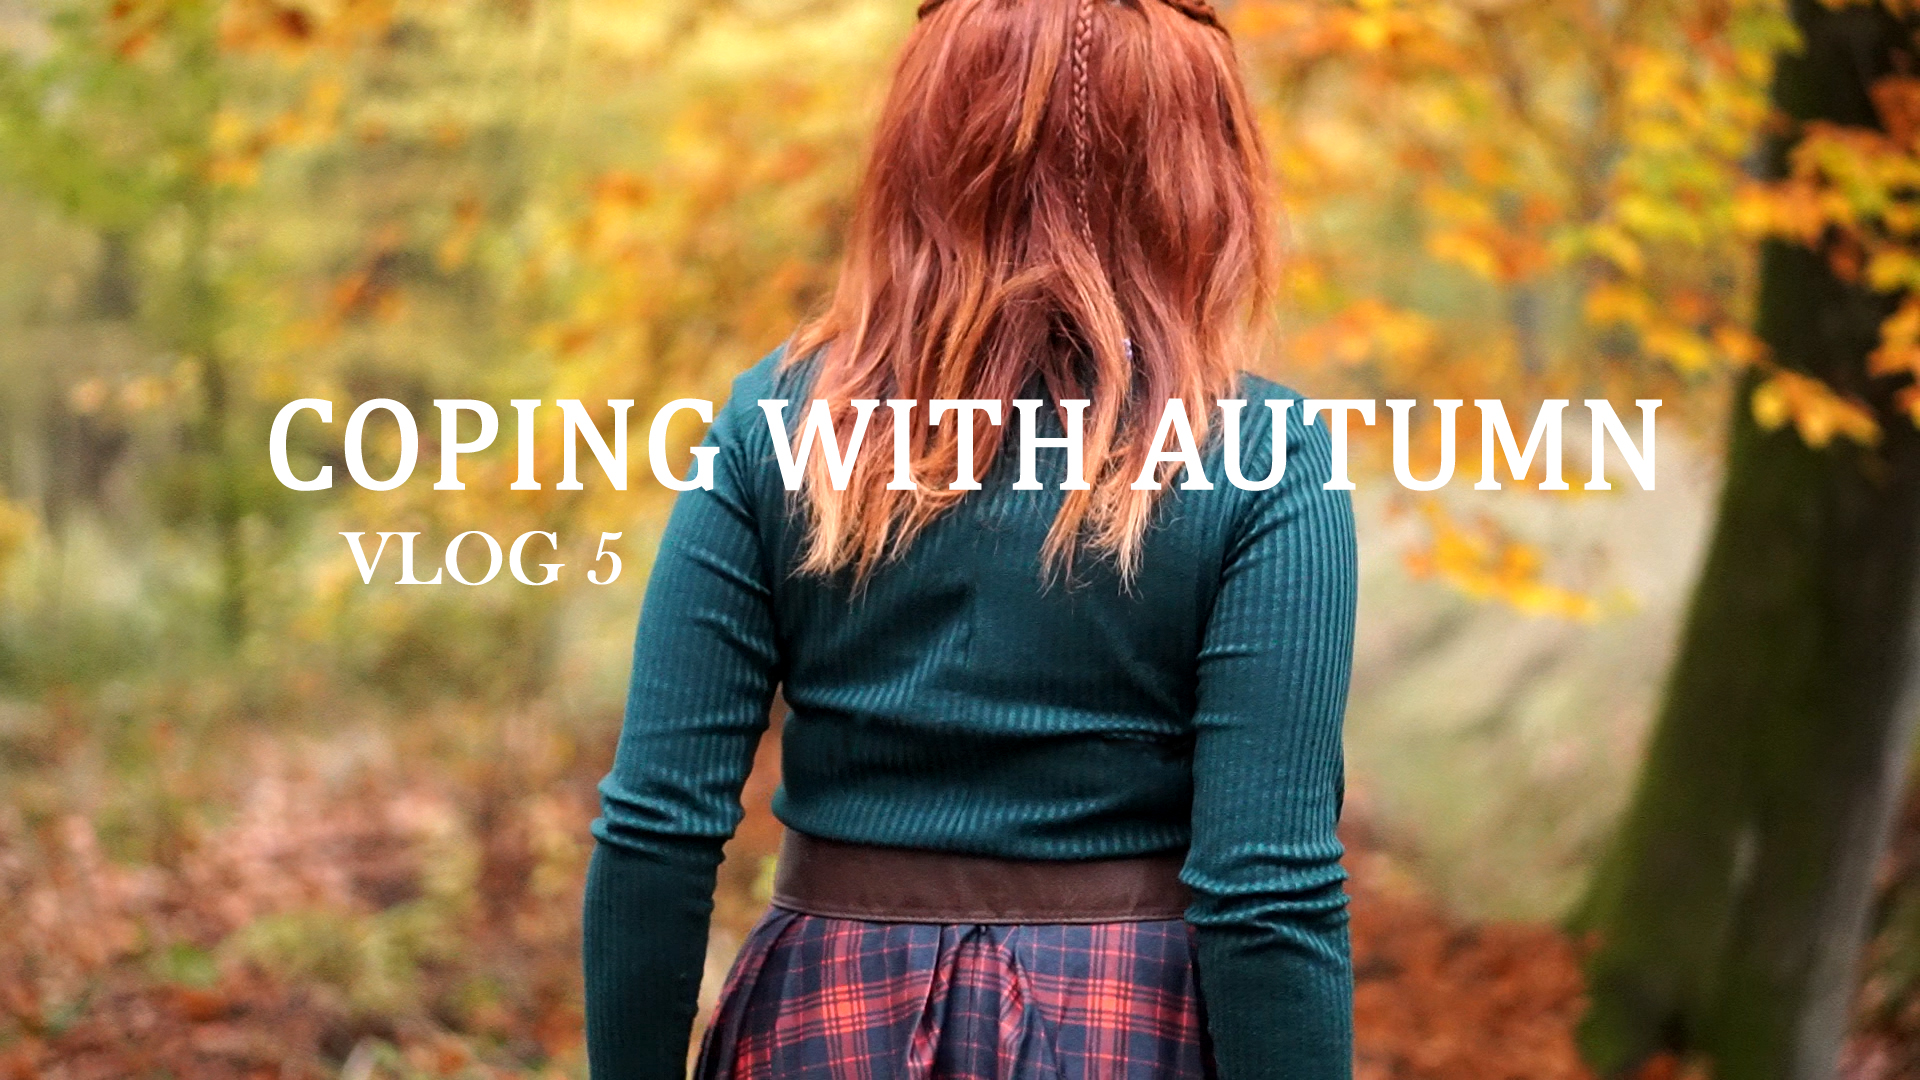 VLOG 5: Coping with autumn: videoclip, tips for you – singers, depression and autumnal nature